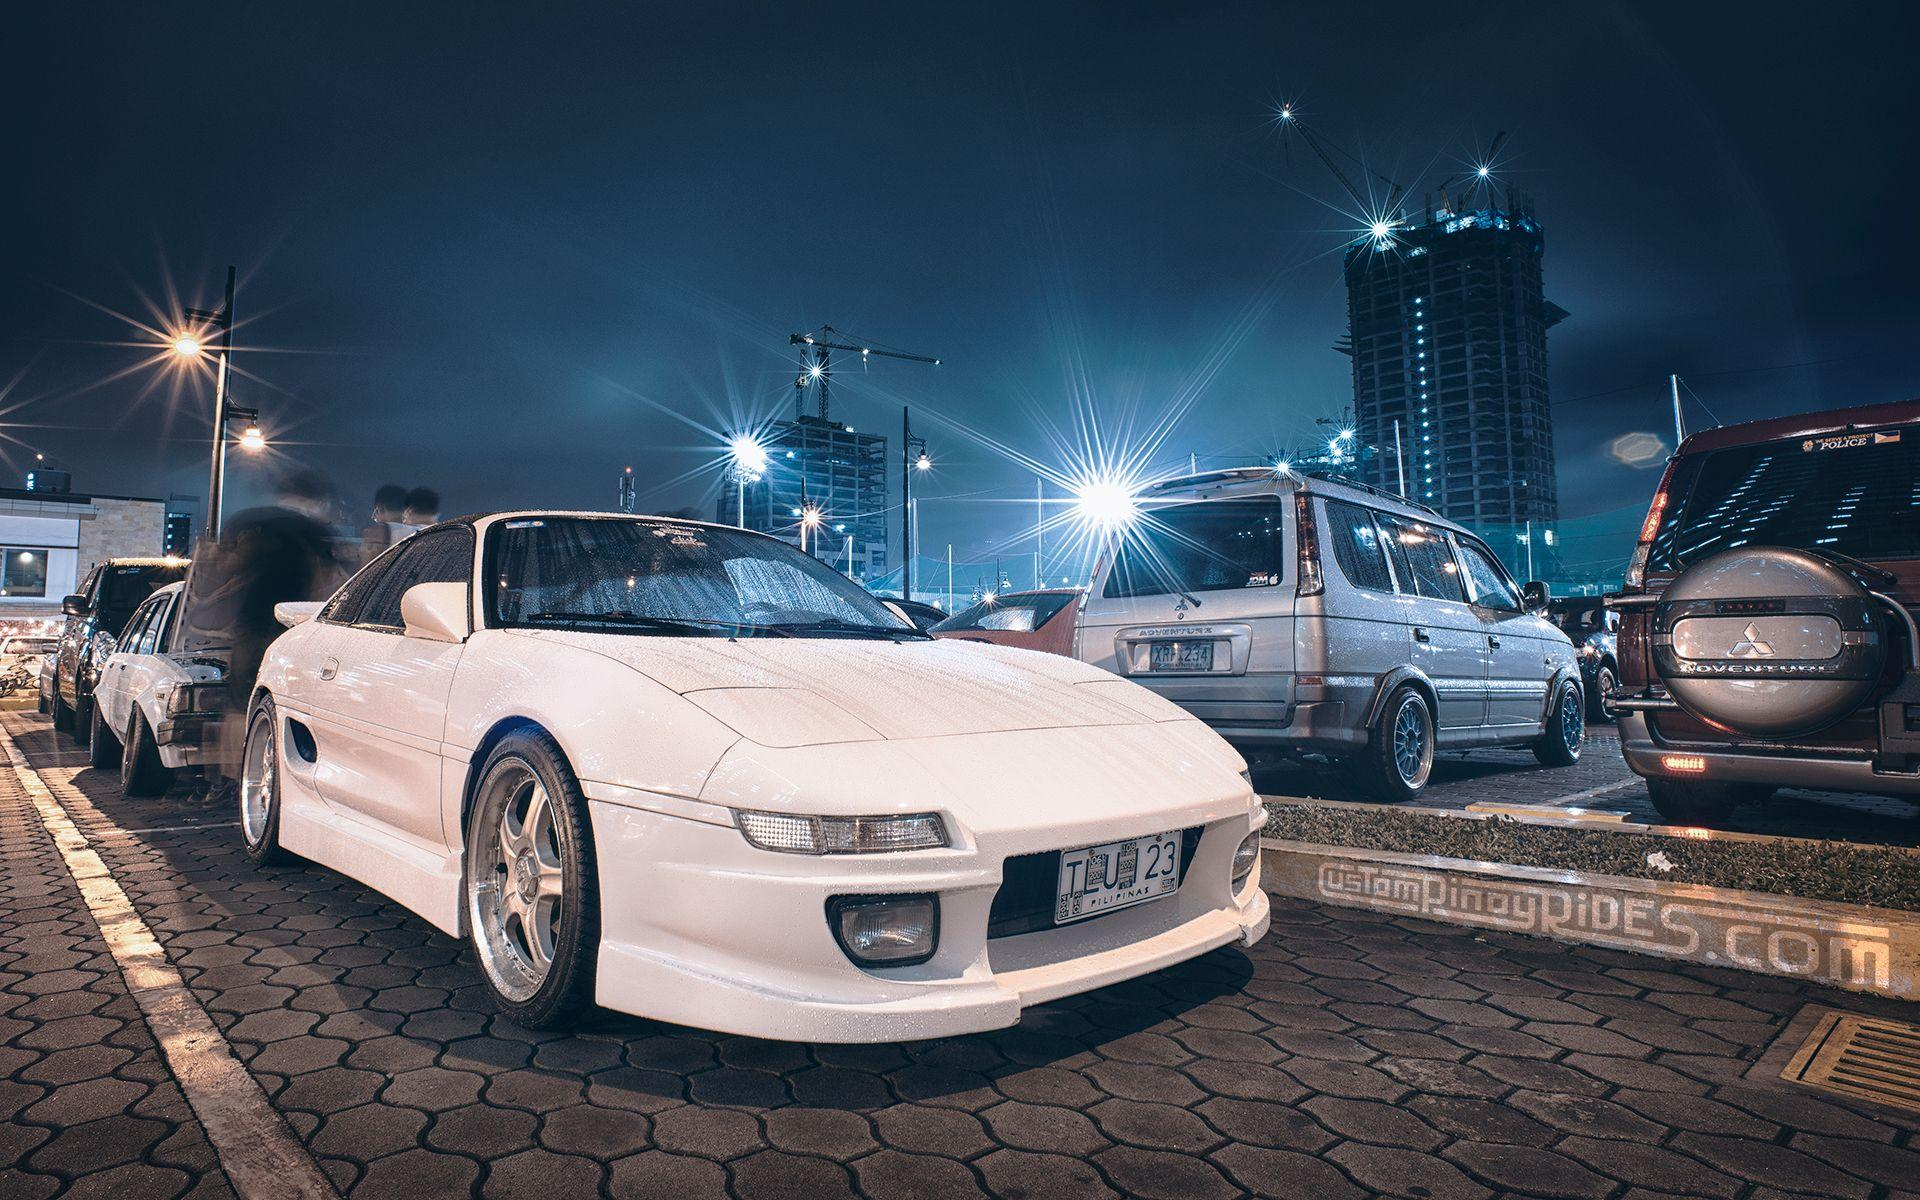 Wallpapers Wednesdays: An MR2 to Light Up the Night